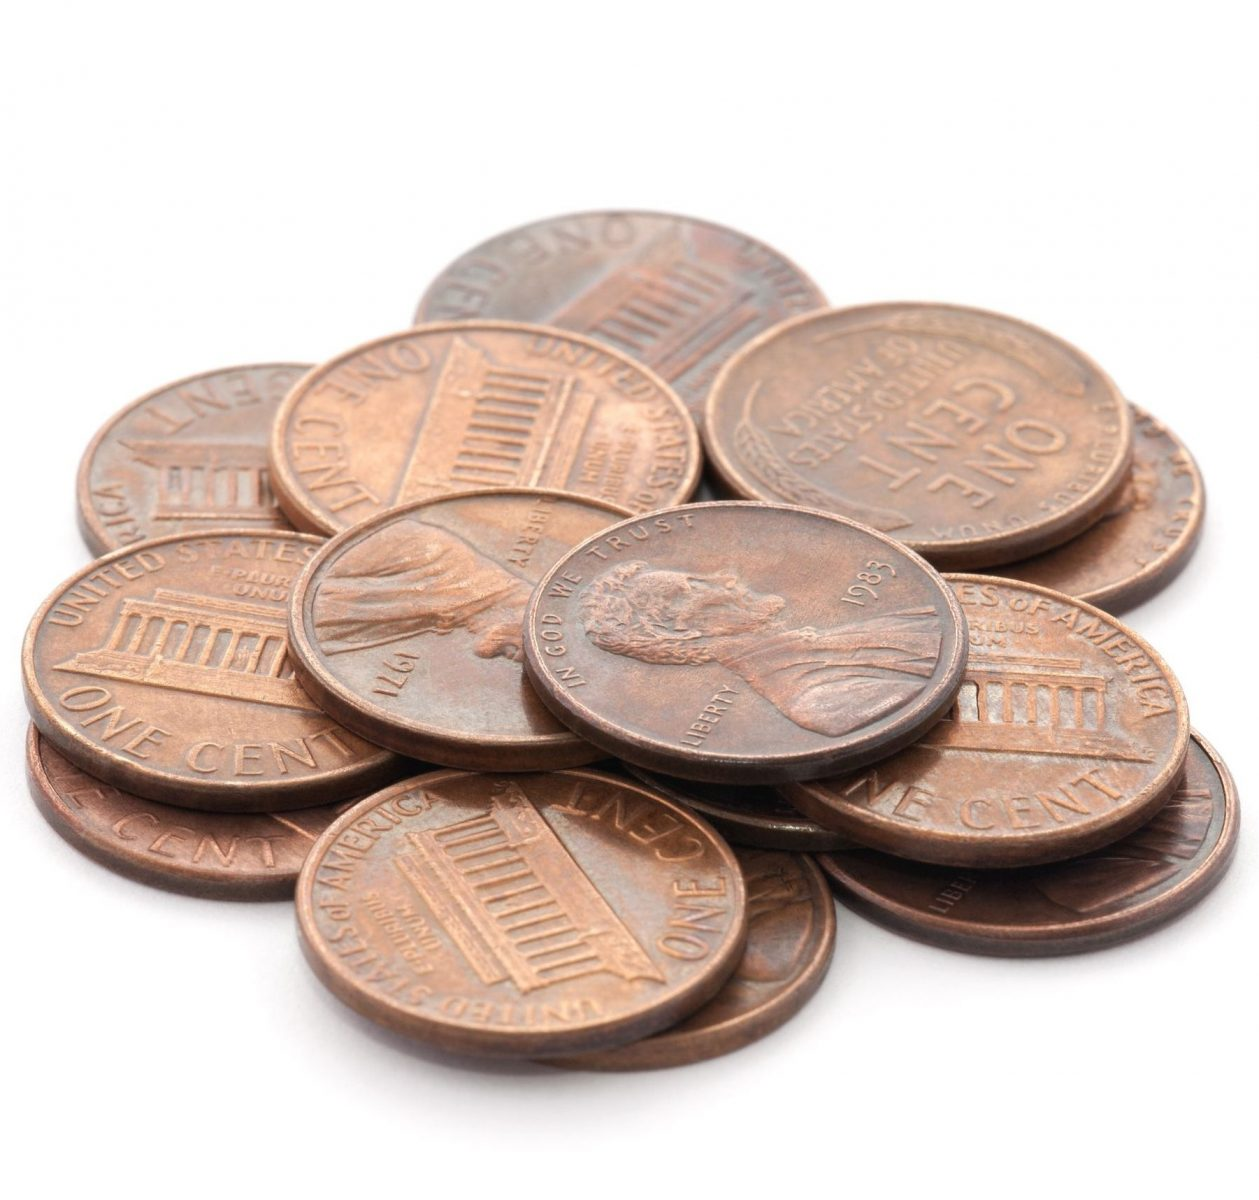 Springfield Bans Payment With Coins Traffic Ticket